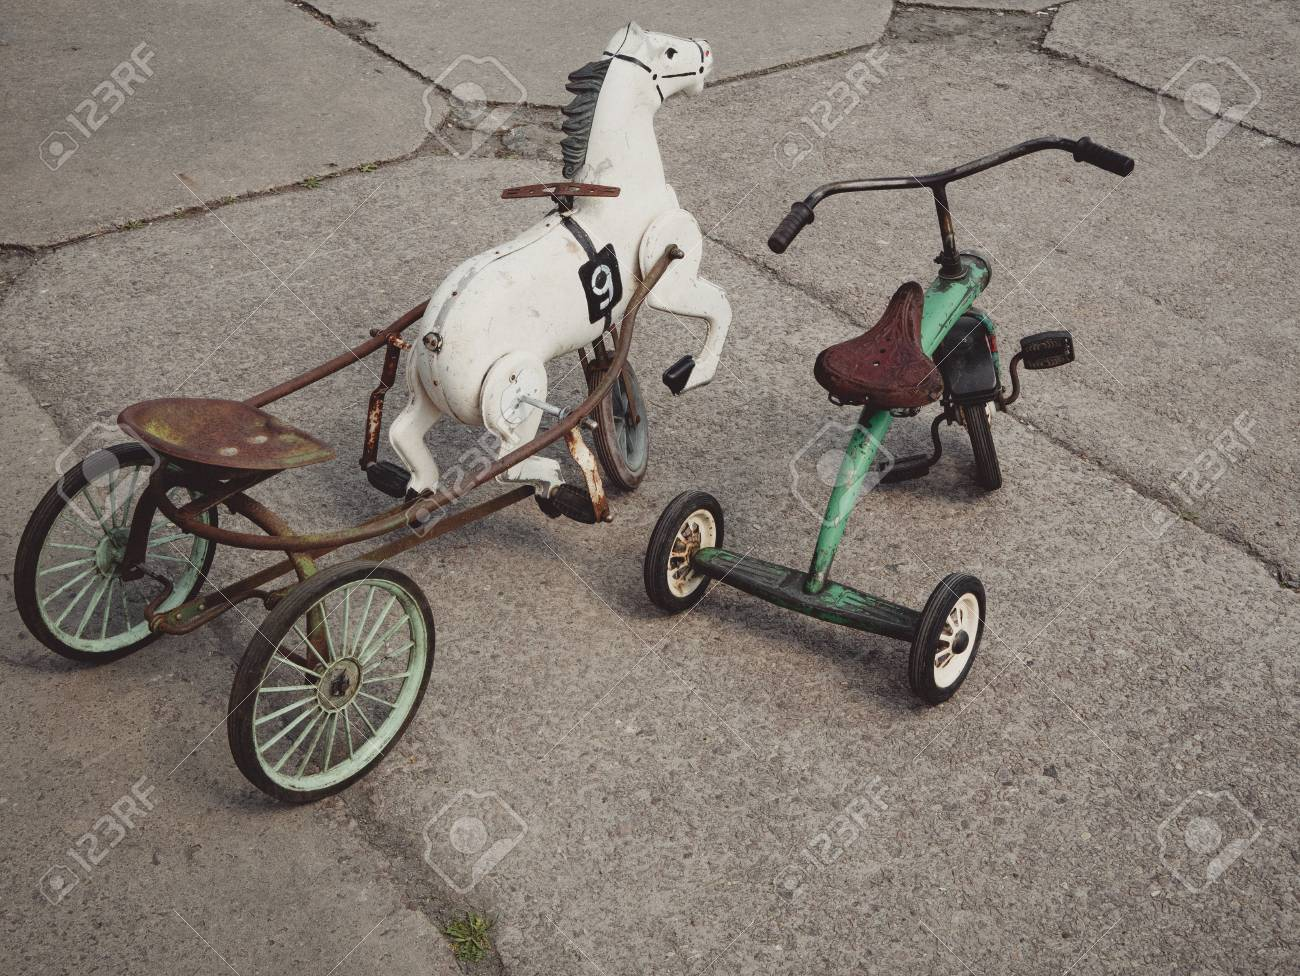 Vintage Bicycle Tricycle Toys With White Horse On A Playground Stock Photo Picture And Royalty Free Image Image 101335945